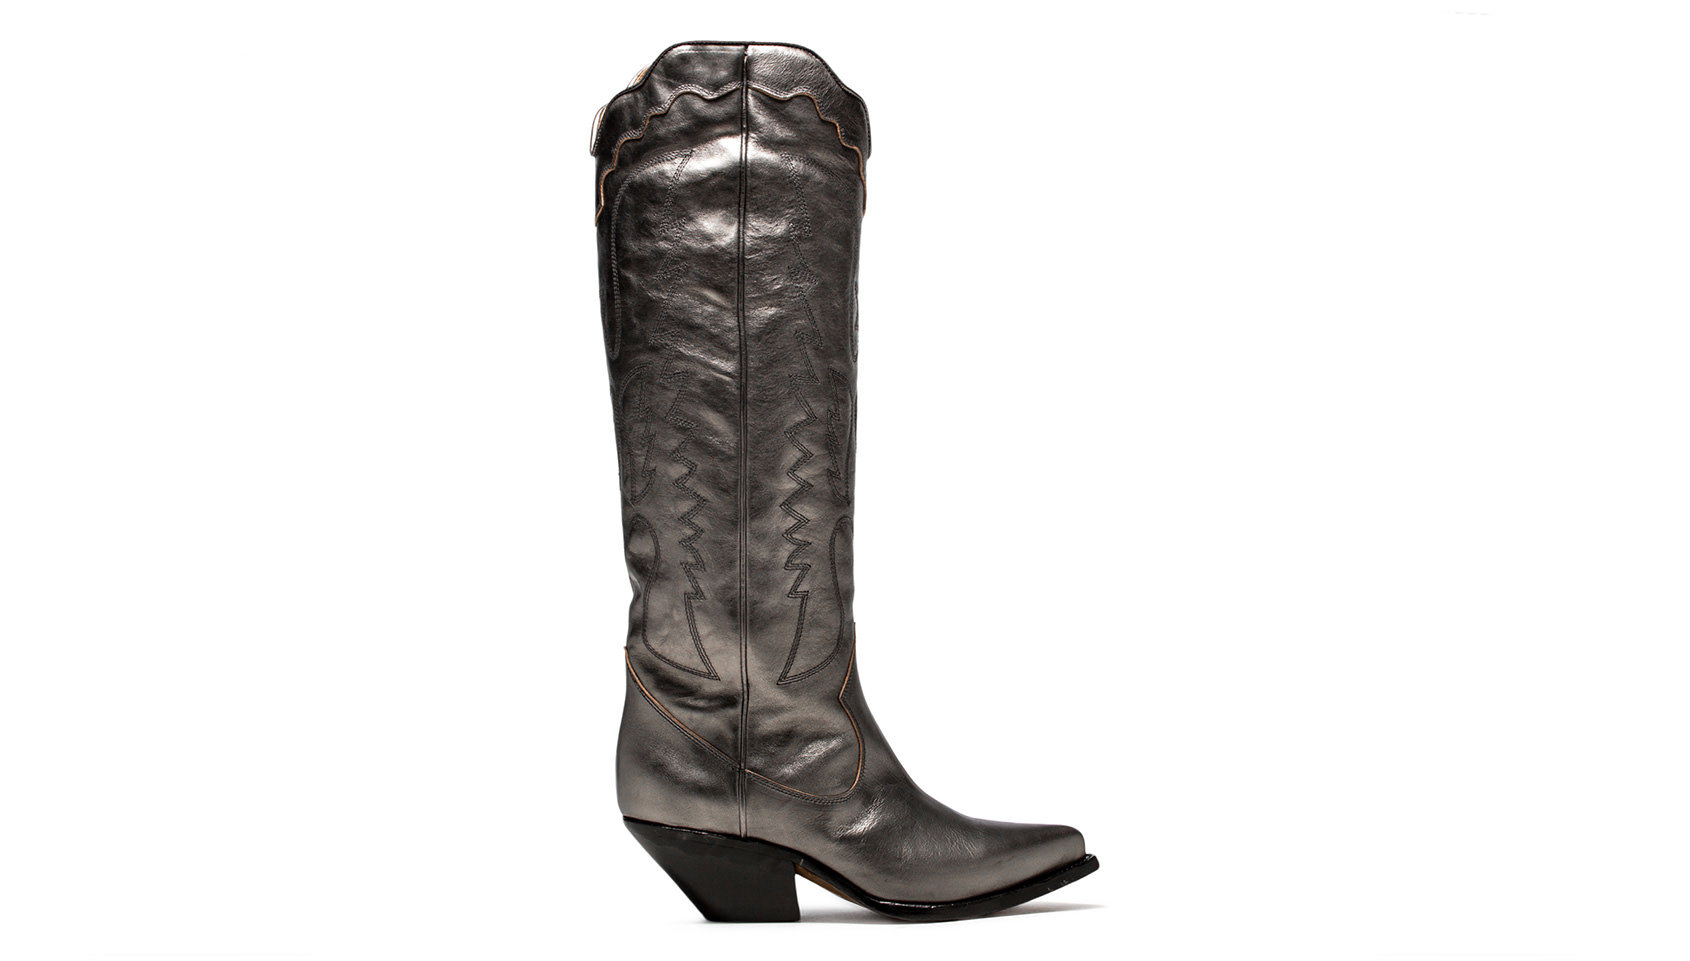 BUTTERO: ELISE HIGH TOP BOOTS IN GRAPHITE LAMINATED LEATHER